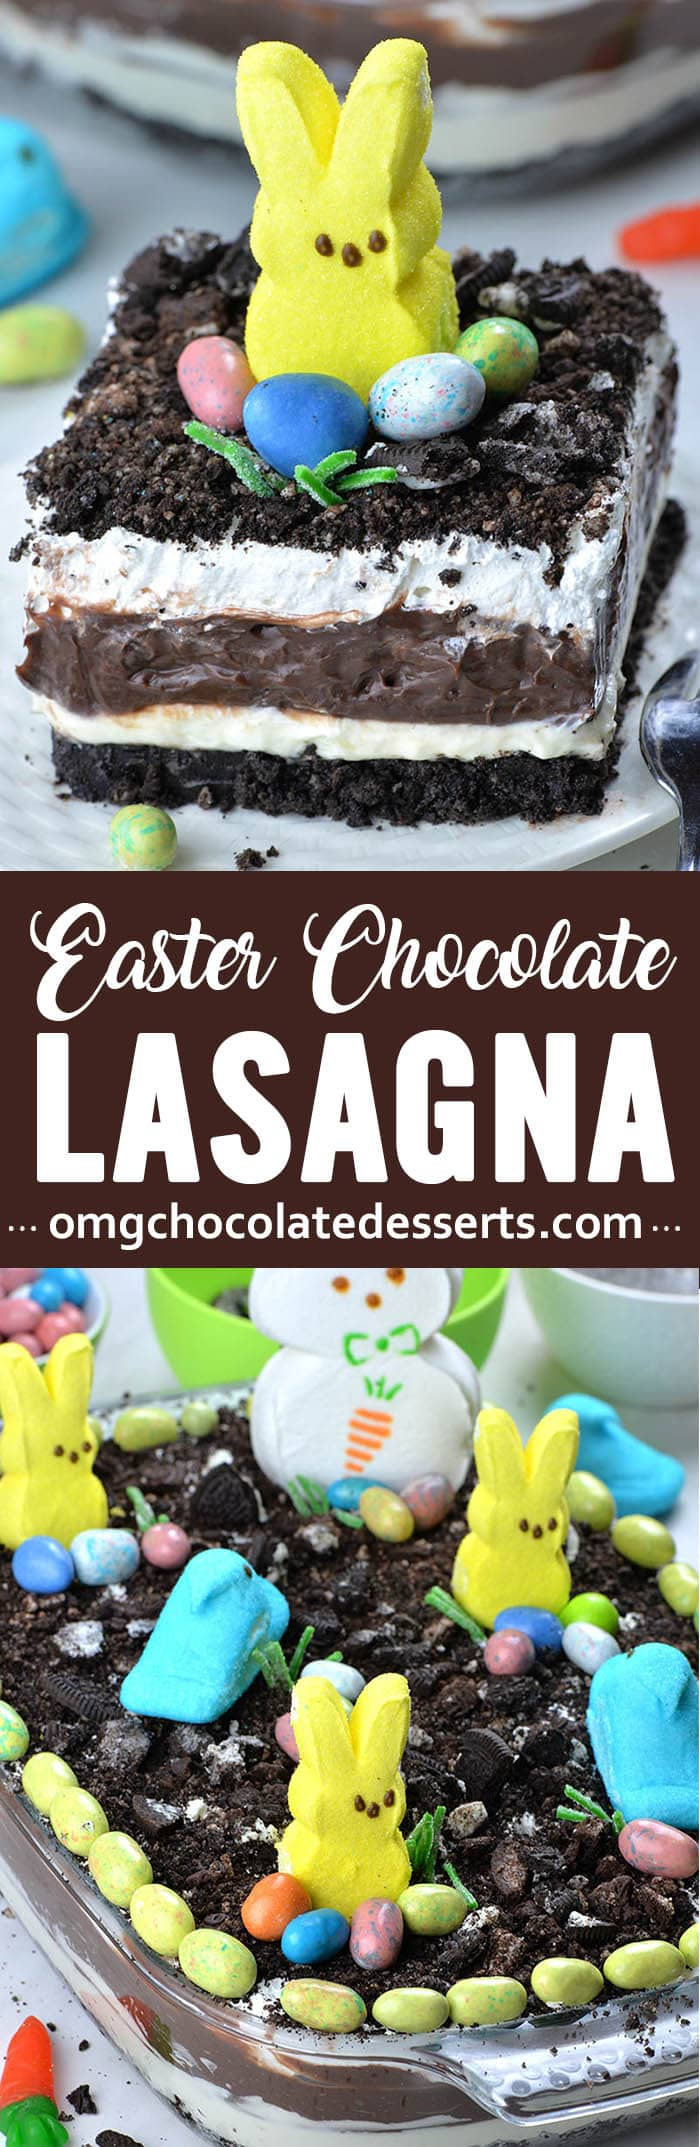 Easter Chocolate Lasagna - No bake dessert with crushed Oreo, cream cheese, chocolate pudding and Cool Whip, garnished with Peeps and Easter egg candies is perfect addition for Easter table.